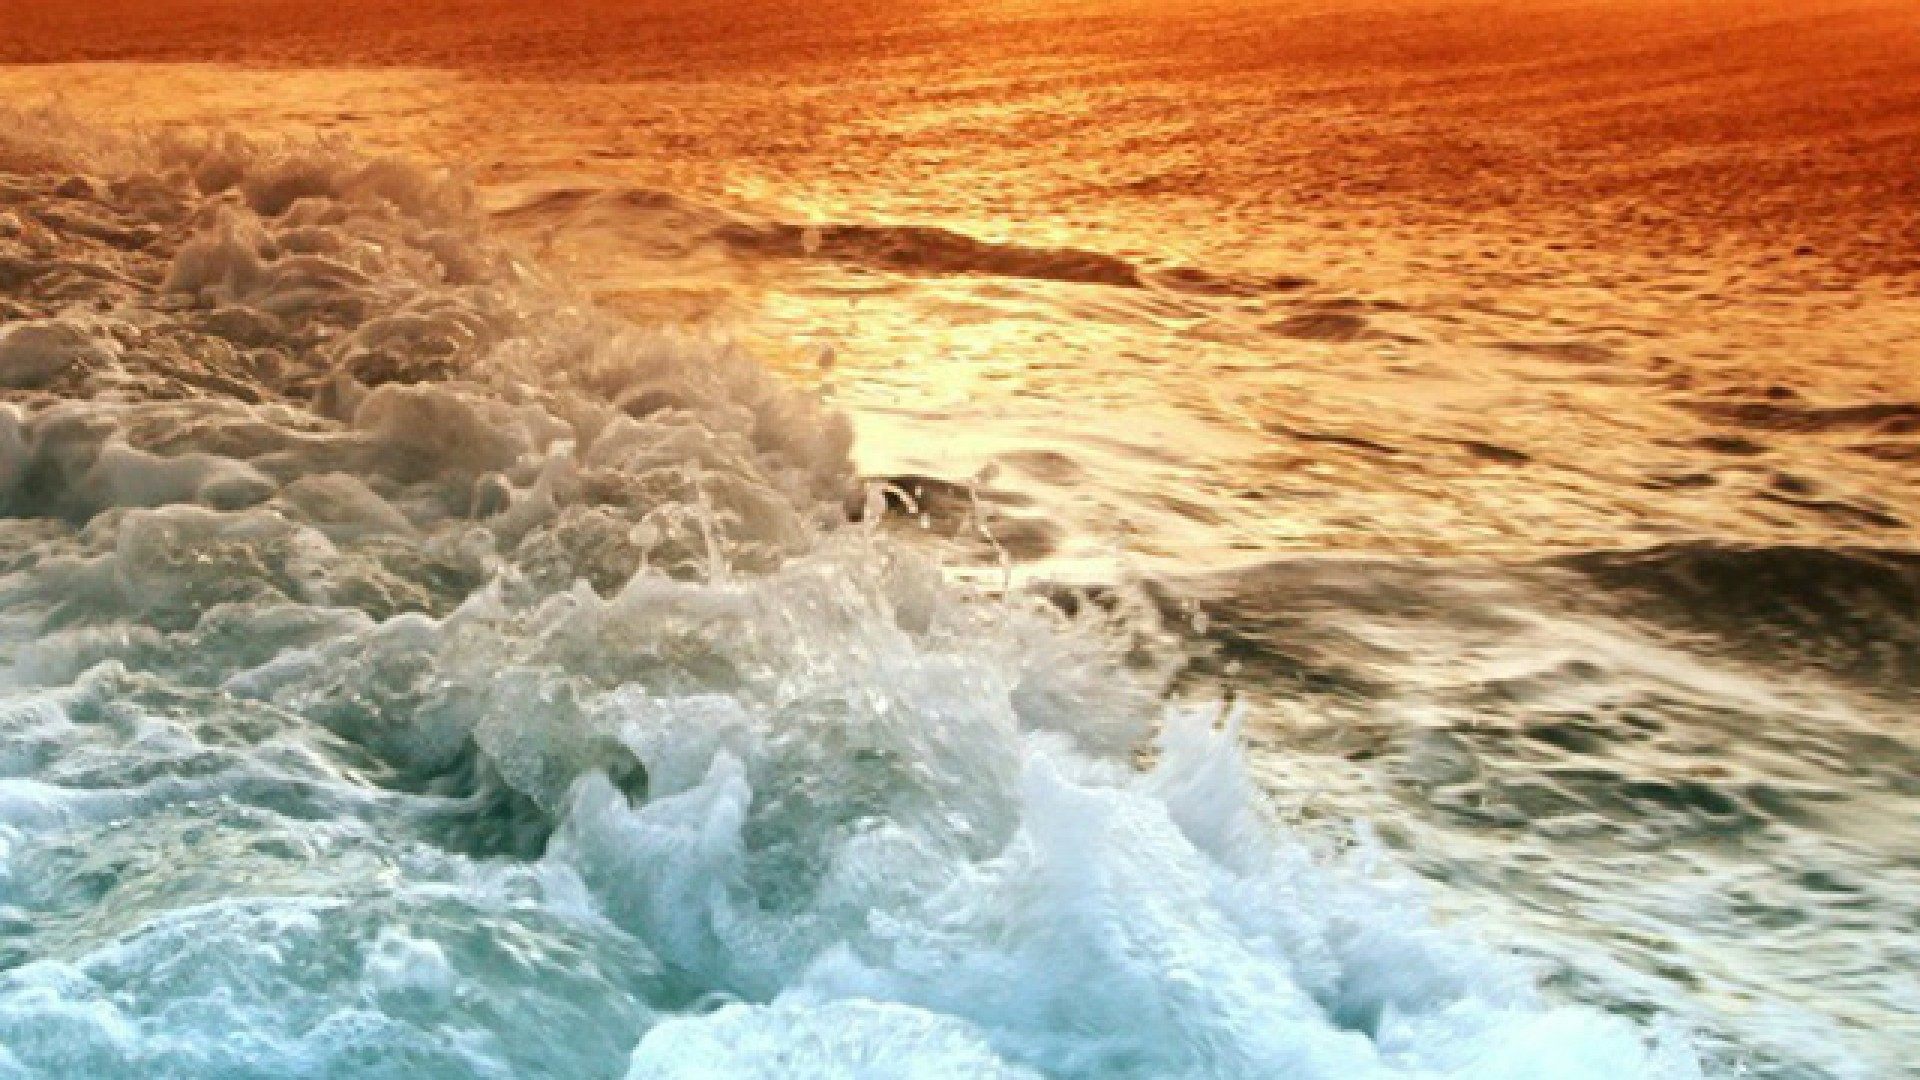 Download Ocean Beach Sunset Hd Iphone Wallpapers   Background 1920x1080